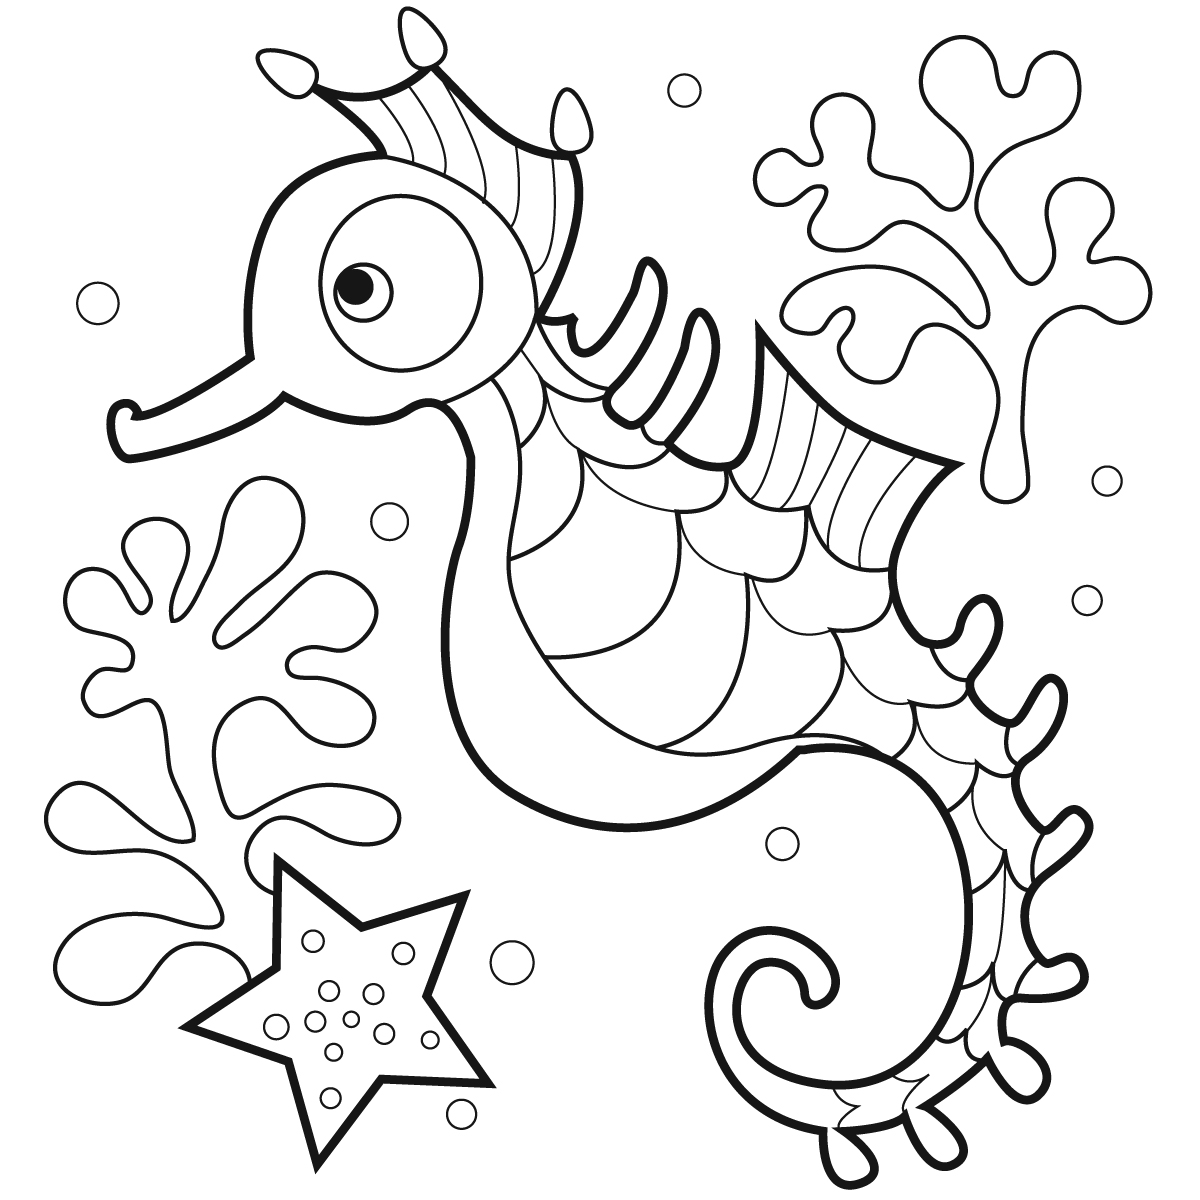 seahorse coloring pages to print - photo#1